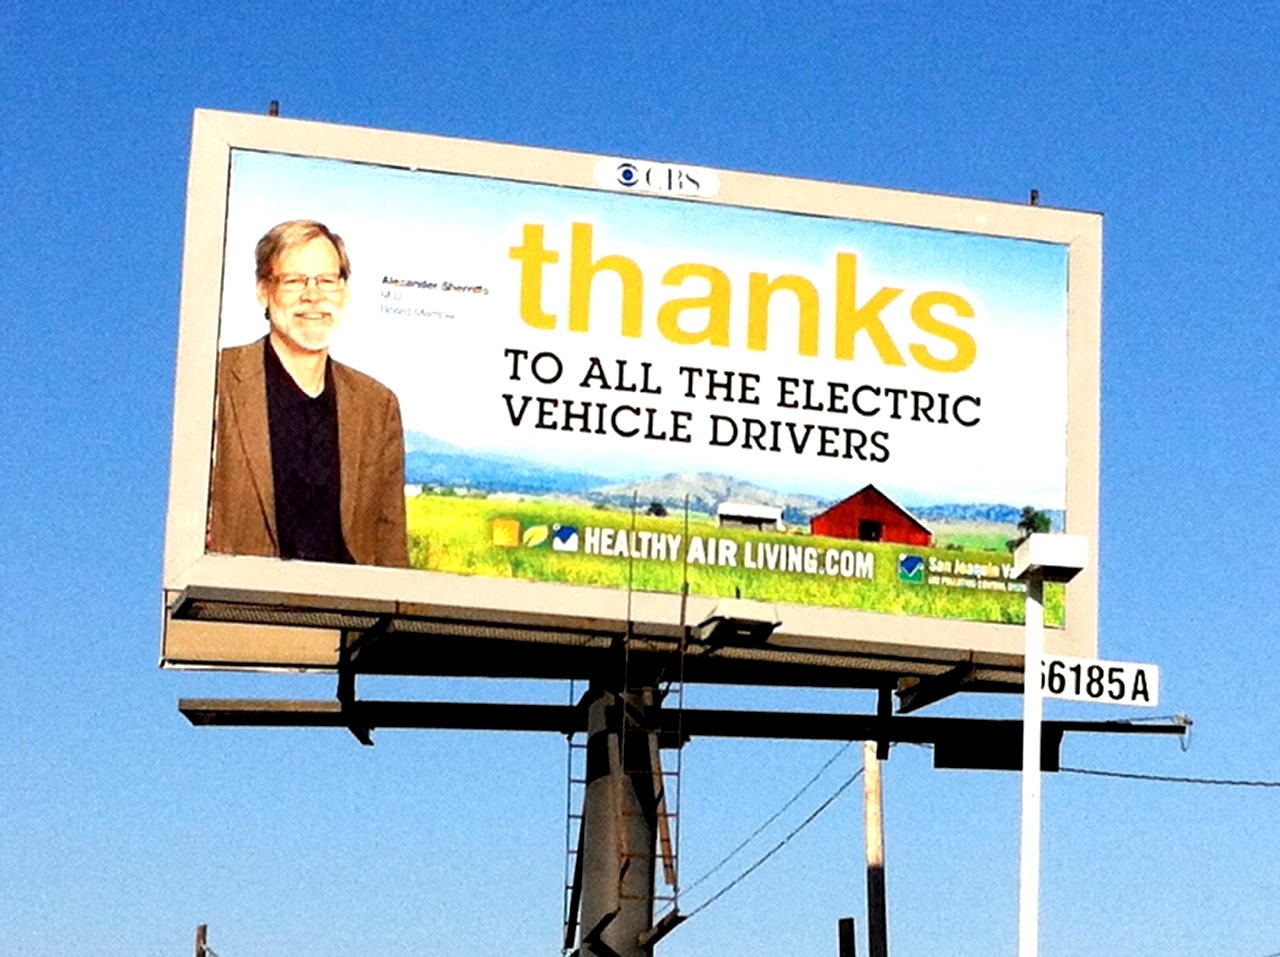 ev billboard.jpeg